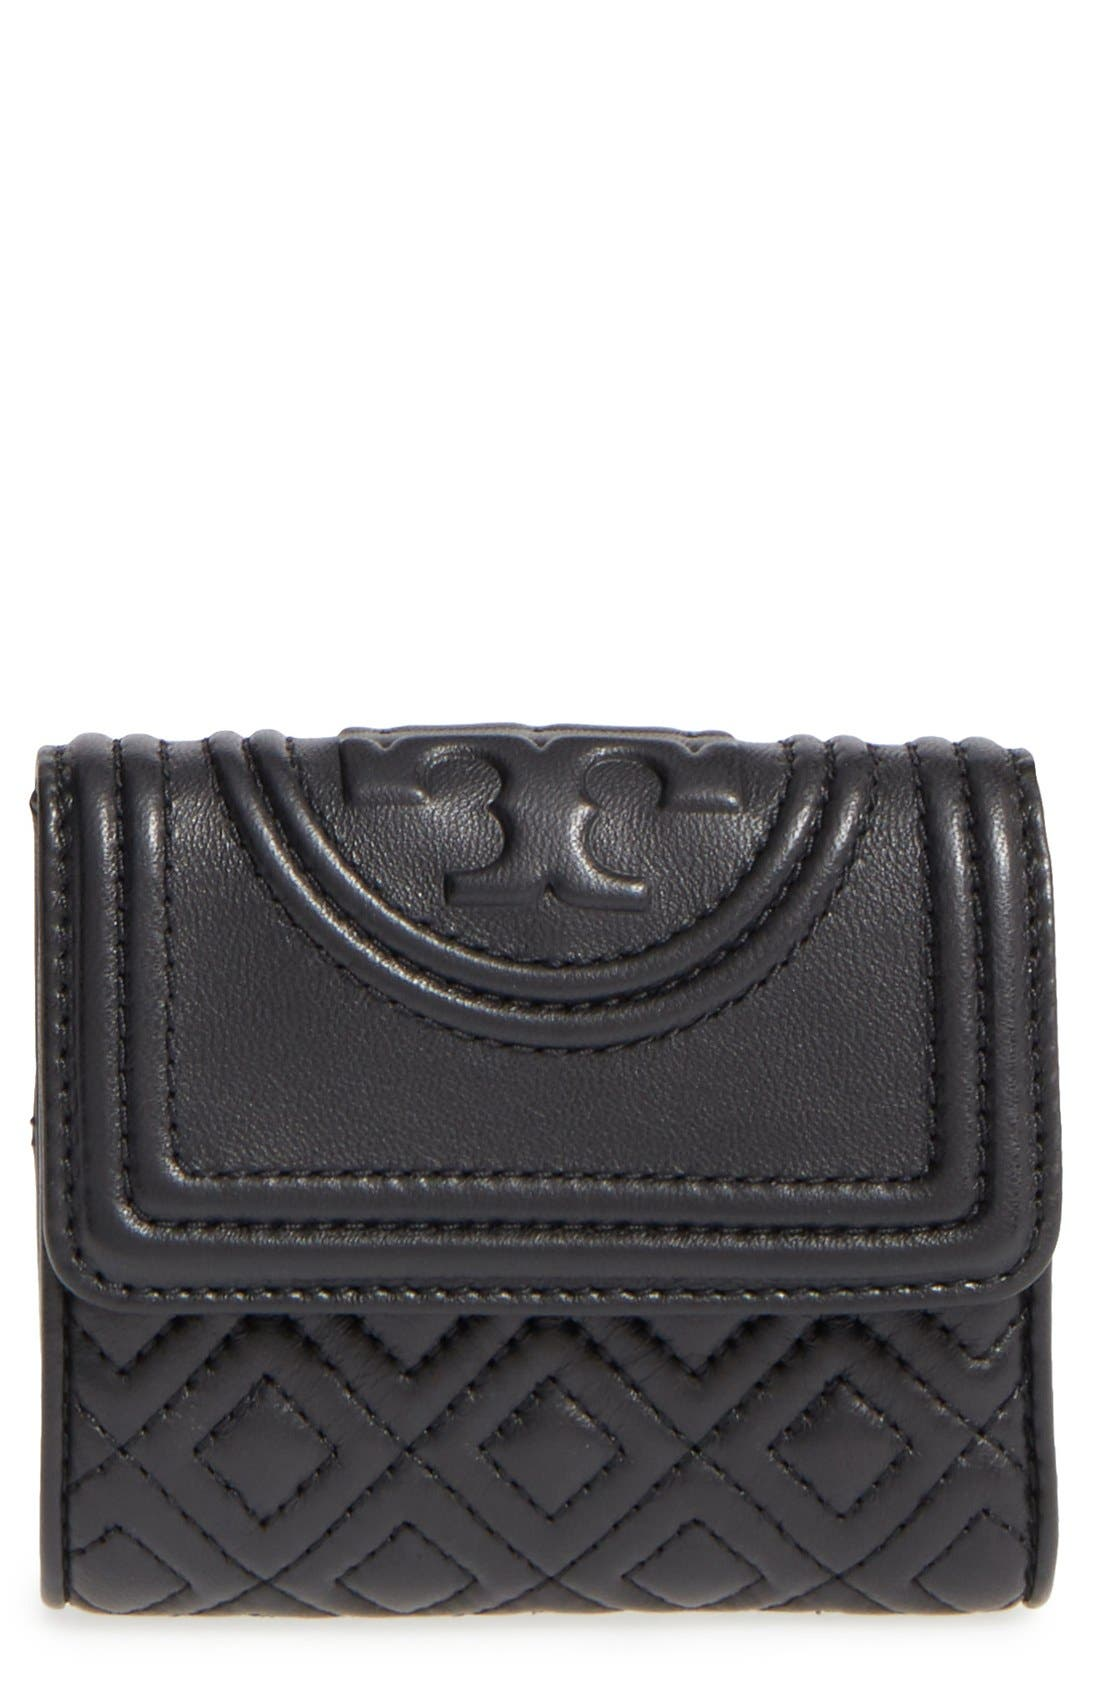 Alternate Image 1 Selected - Tory Burch 'Mini Fleming' Quilted Lambskin Leather Wallet